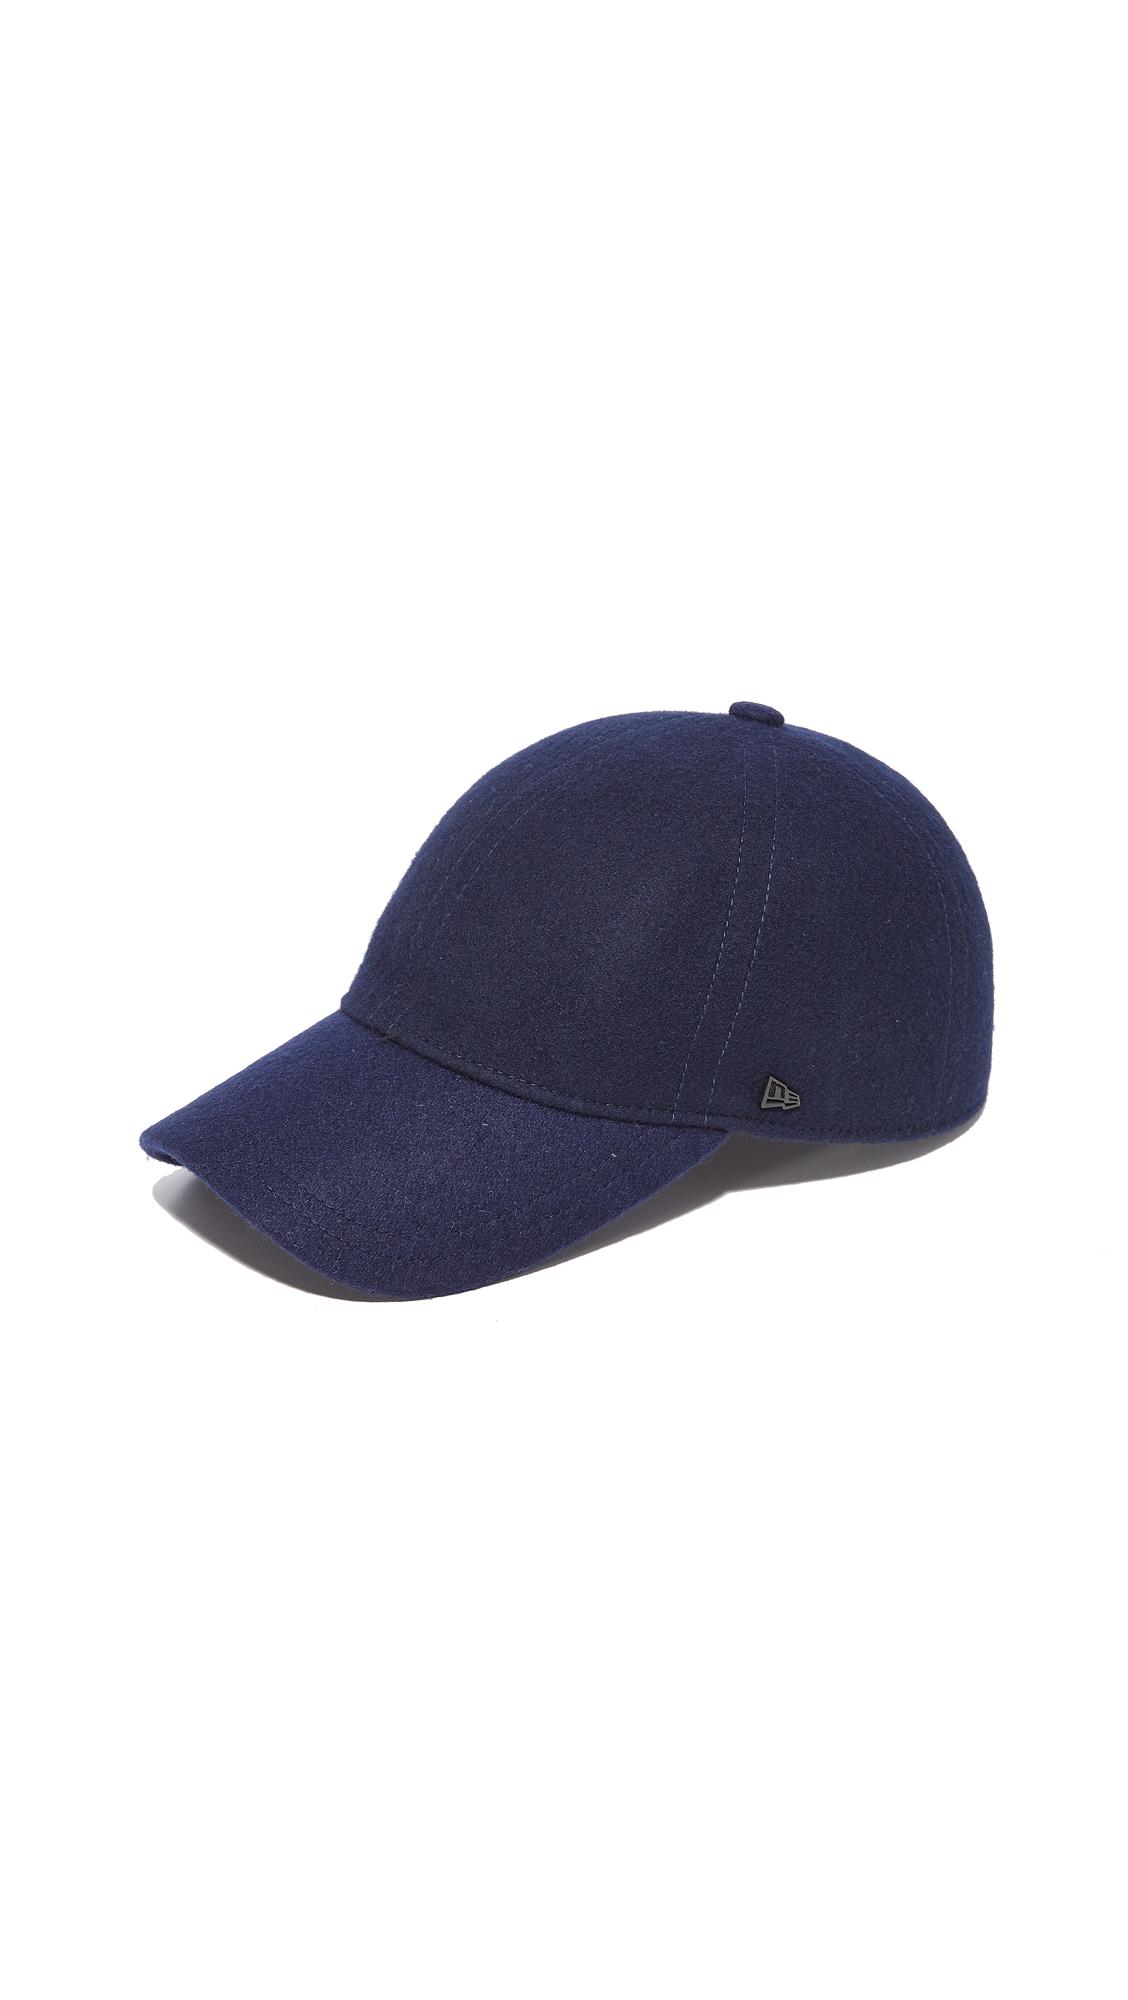 New Era Molded Baseball Cap In Navy